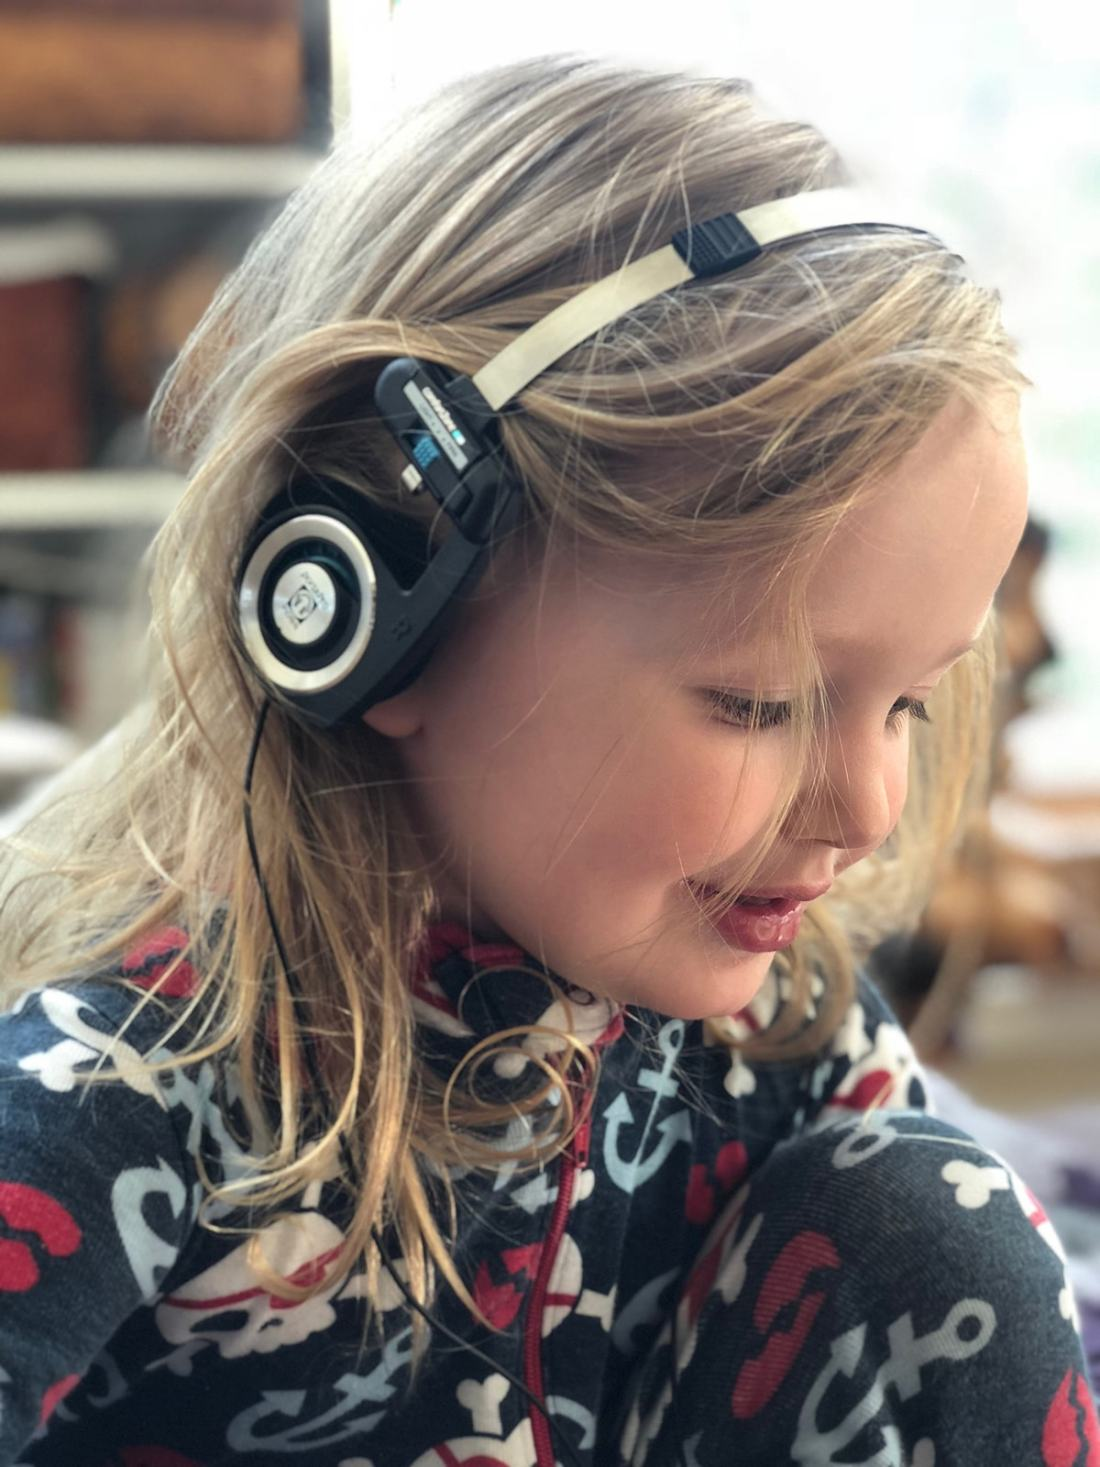 My three-year-old experiencing some of his first headphone listening with the original Porta Pro. It's the perfect gateway to high-quality personal audio.